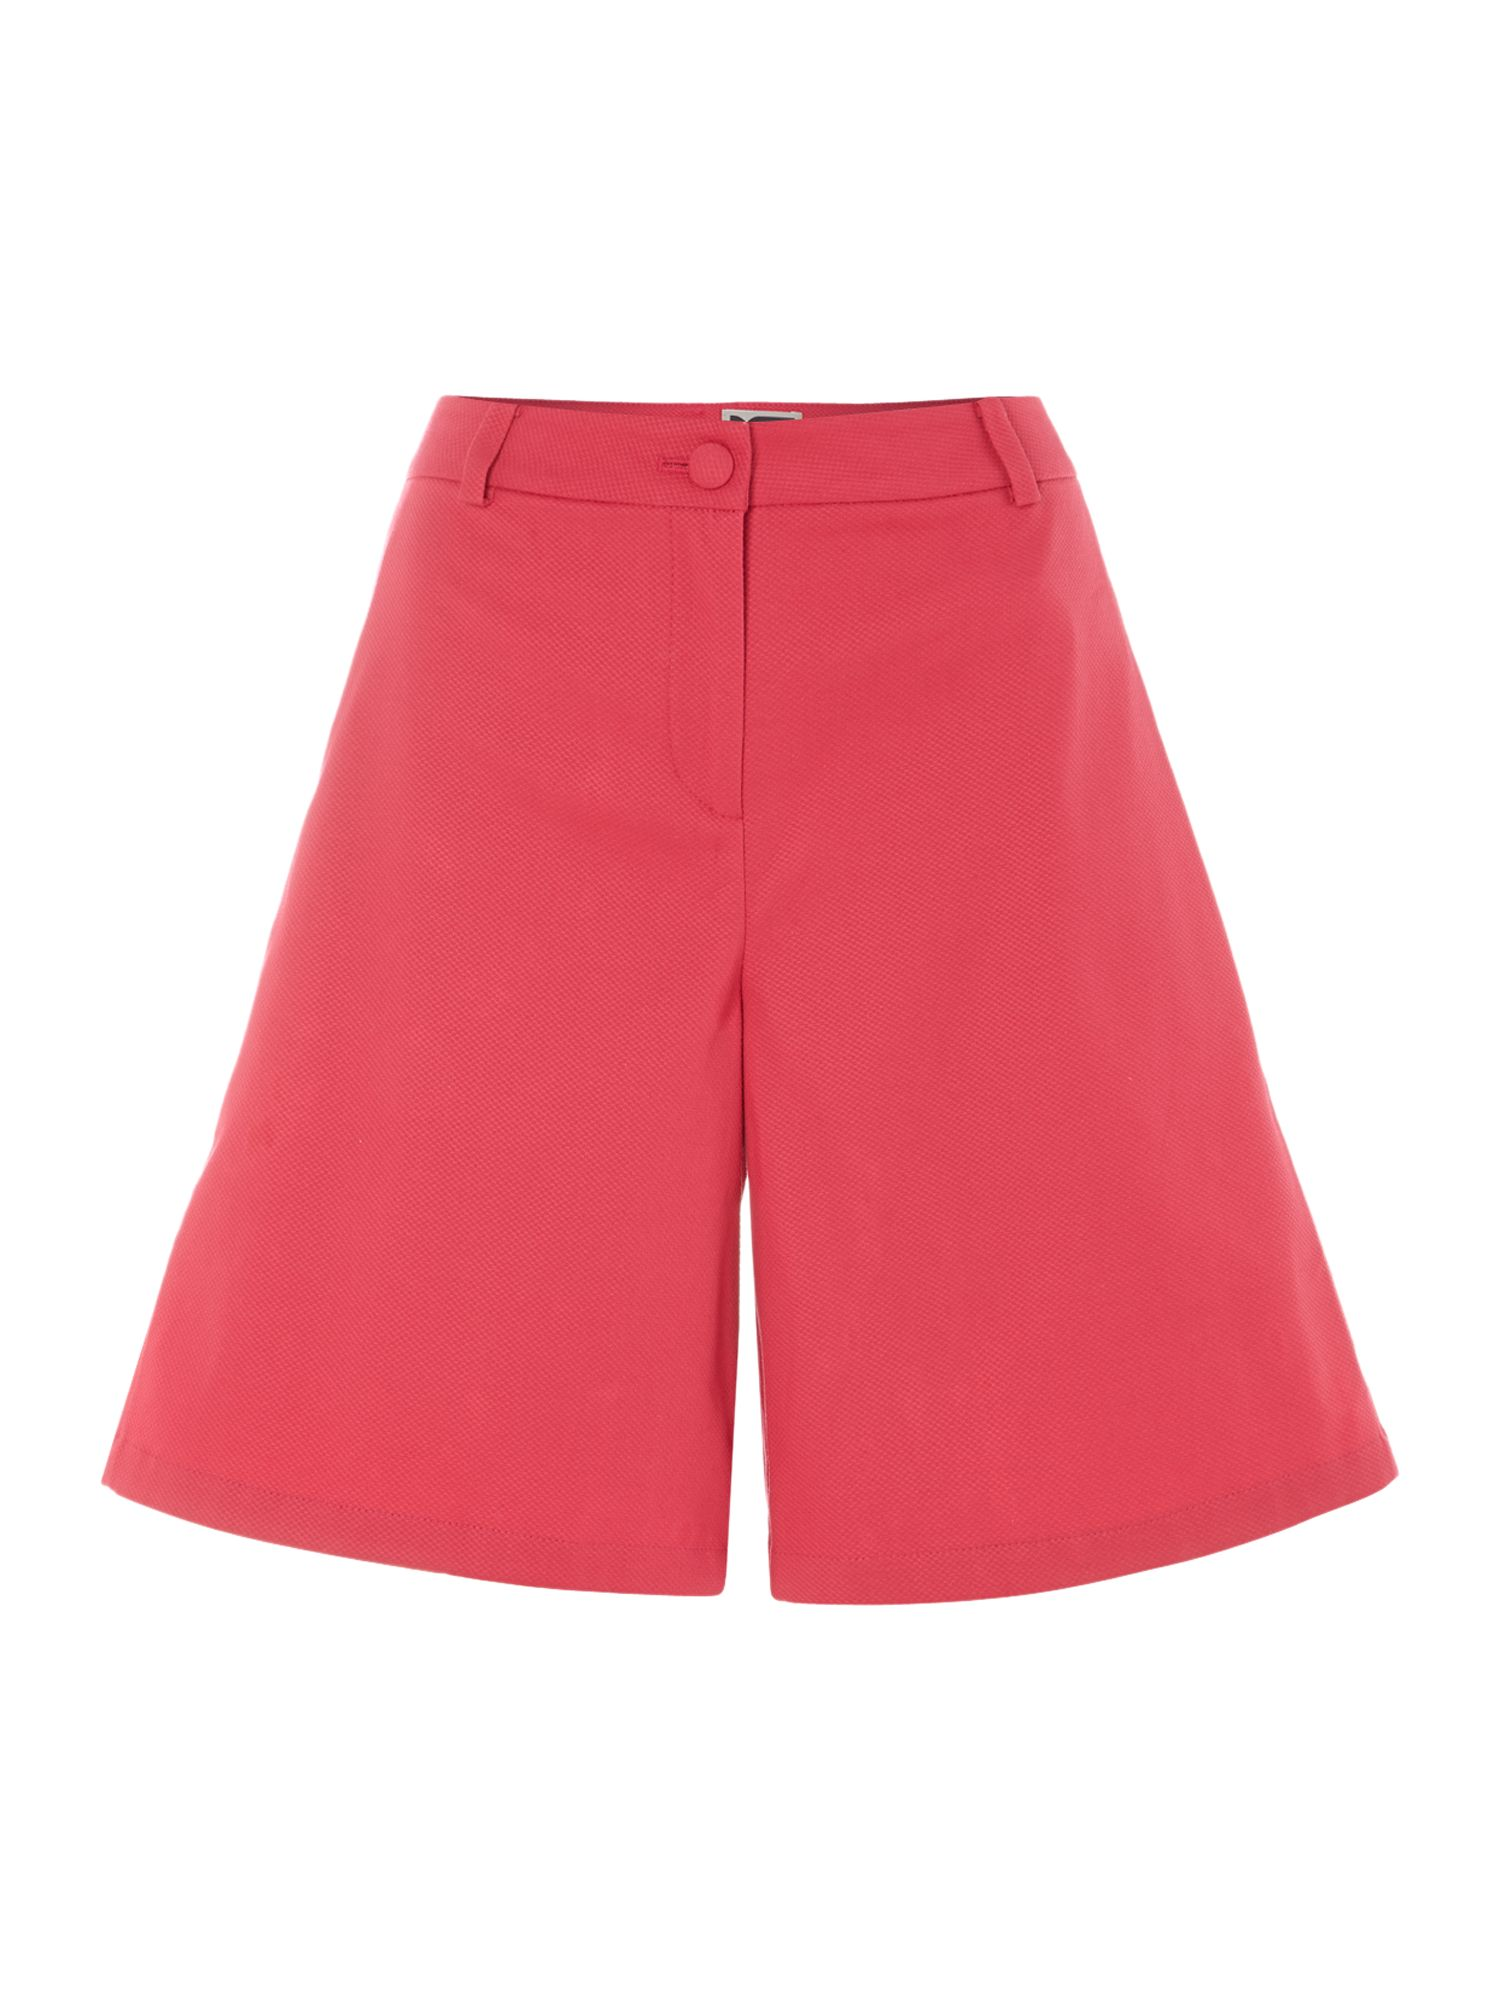 Pique tailored shorts